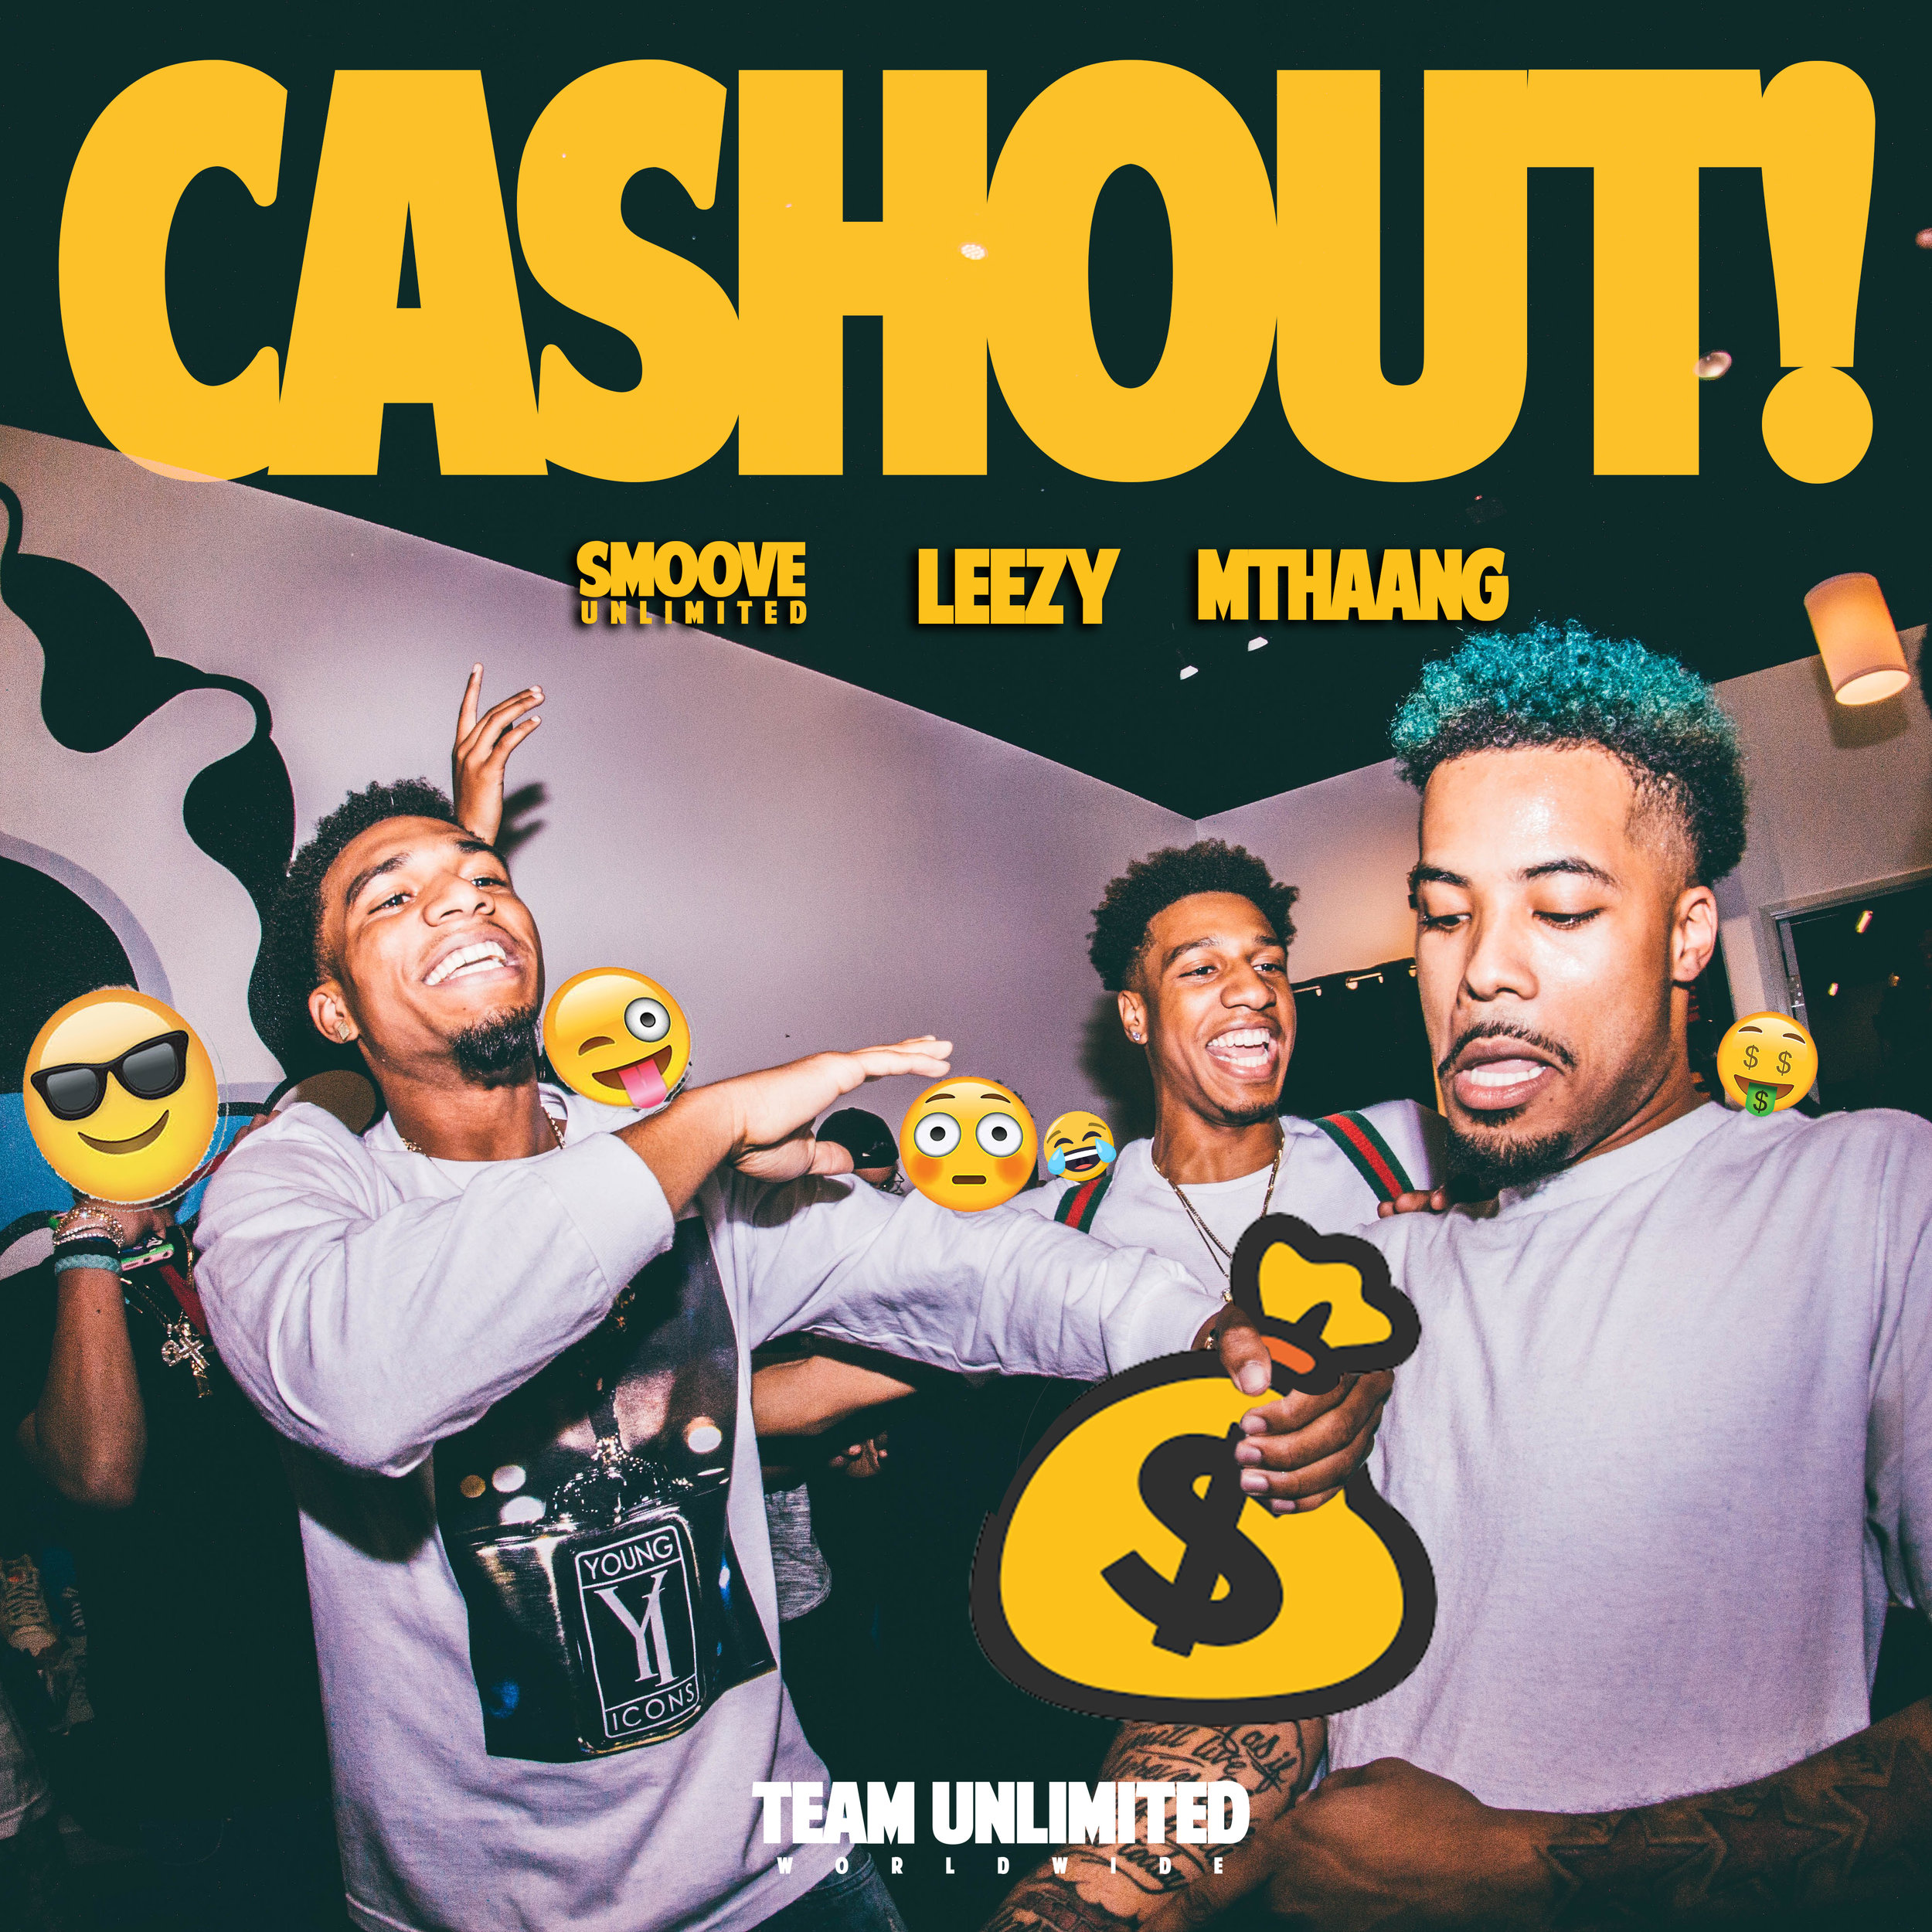 Cashout - by Team Unlimited